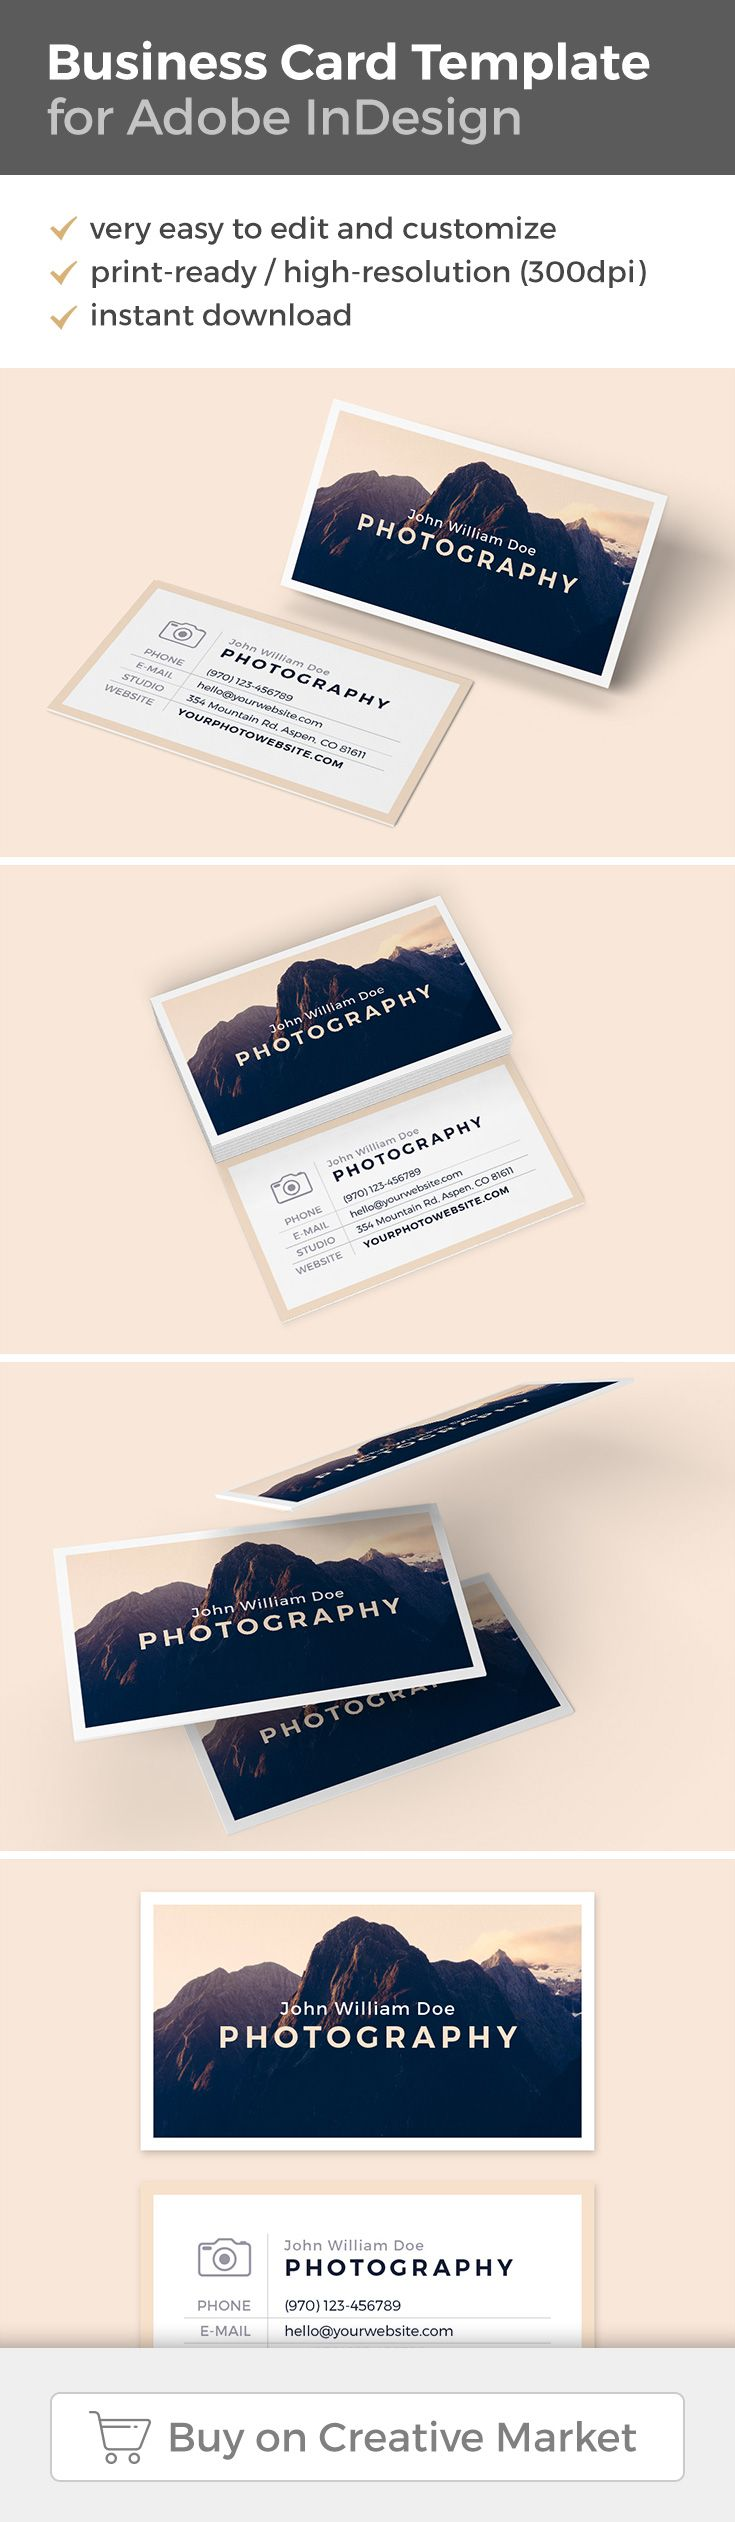 Business Card Template - IMAGINE | Tarjetas de presentación ...